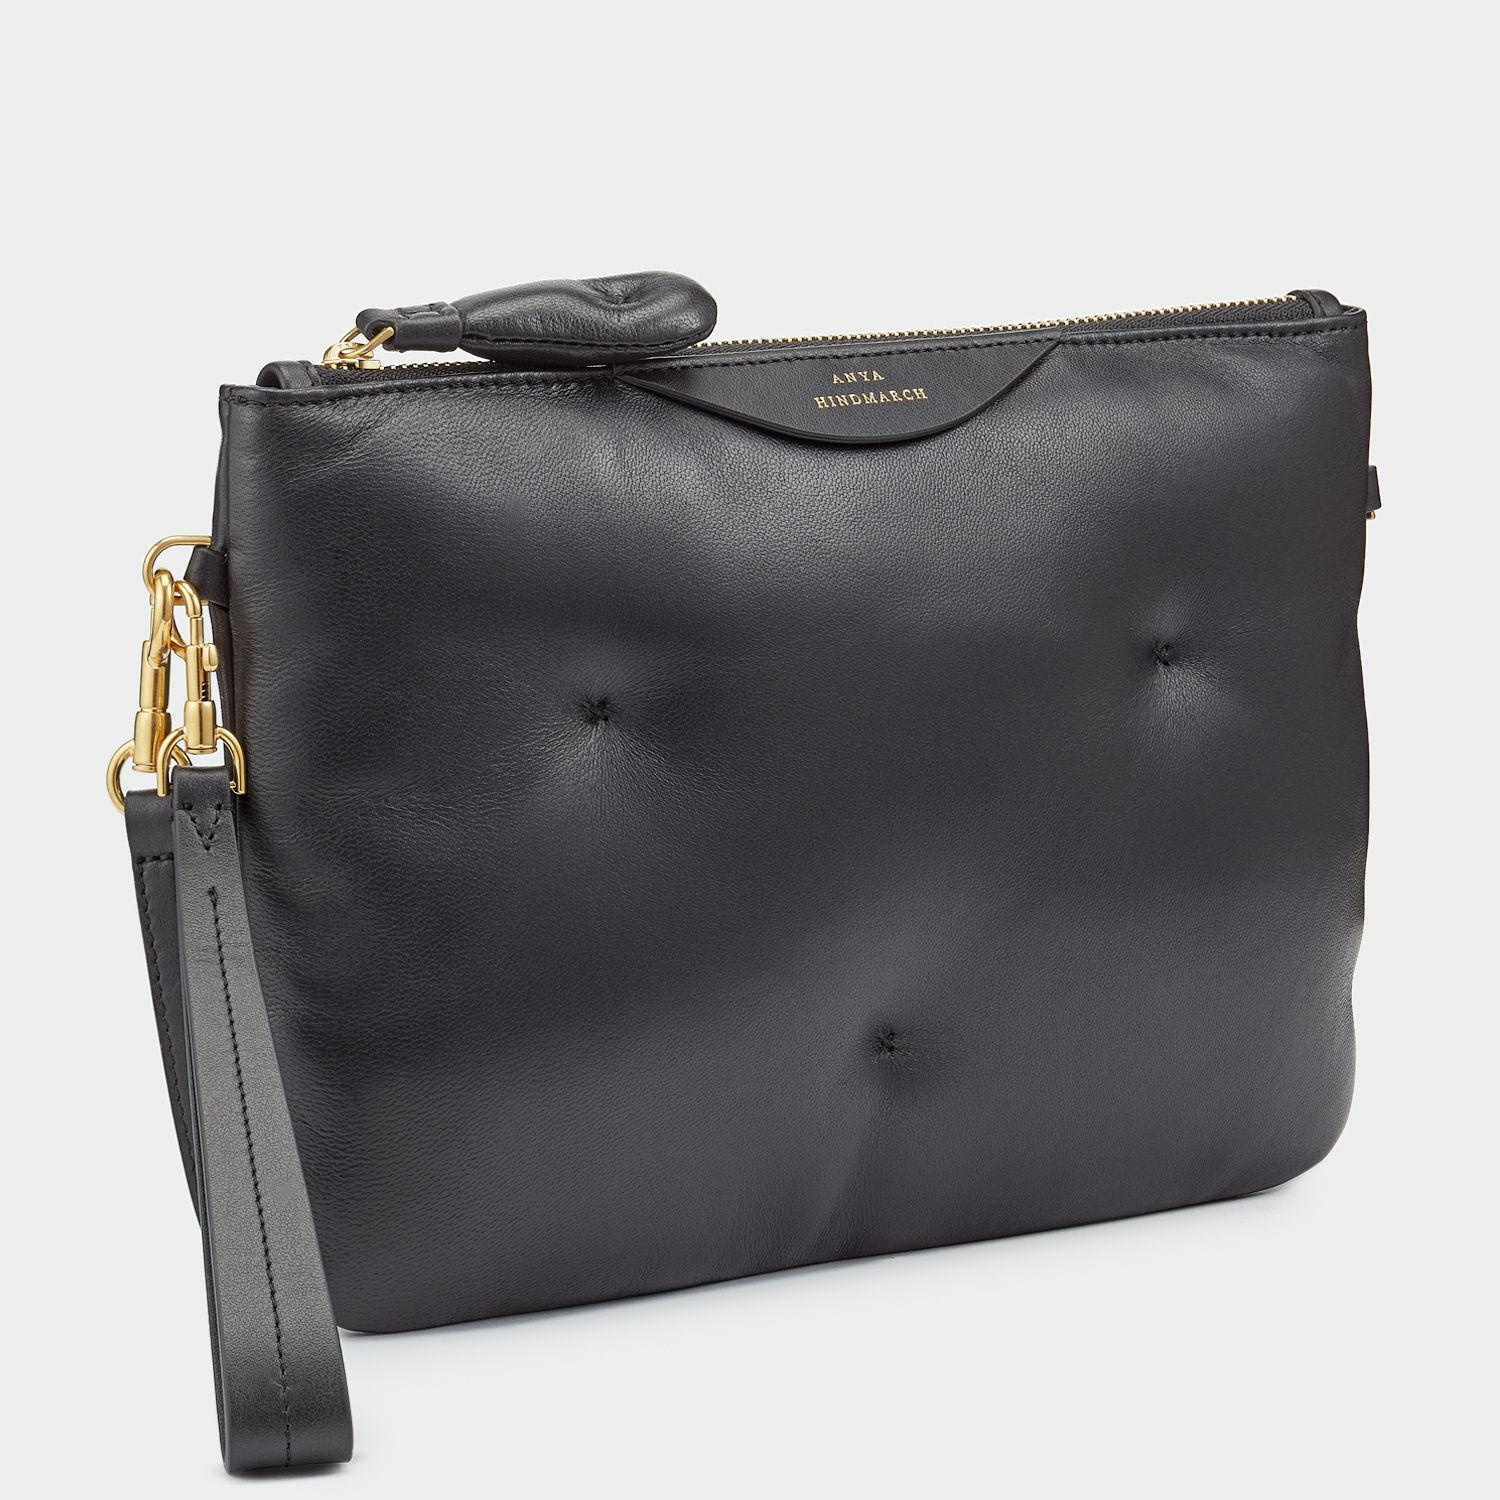 Anya Hindmarch Leather Chubby Cross-body Pouch in Black